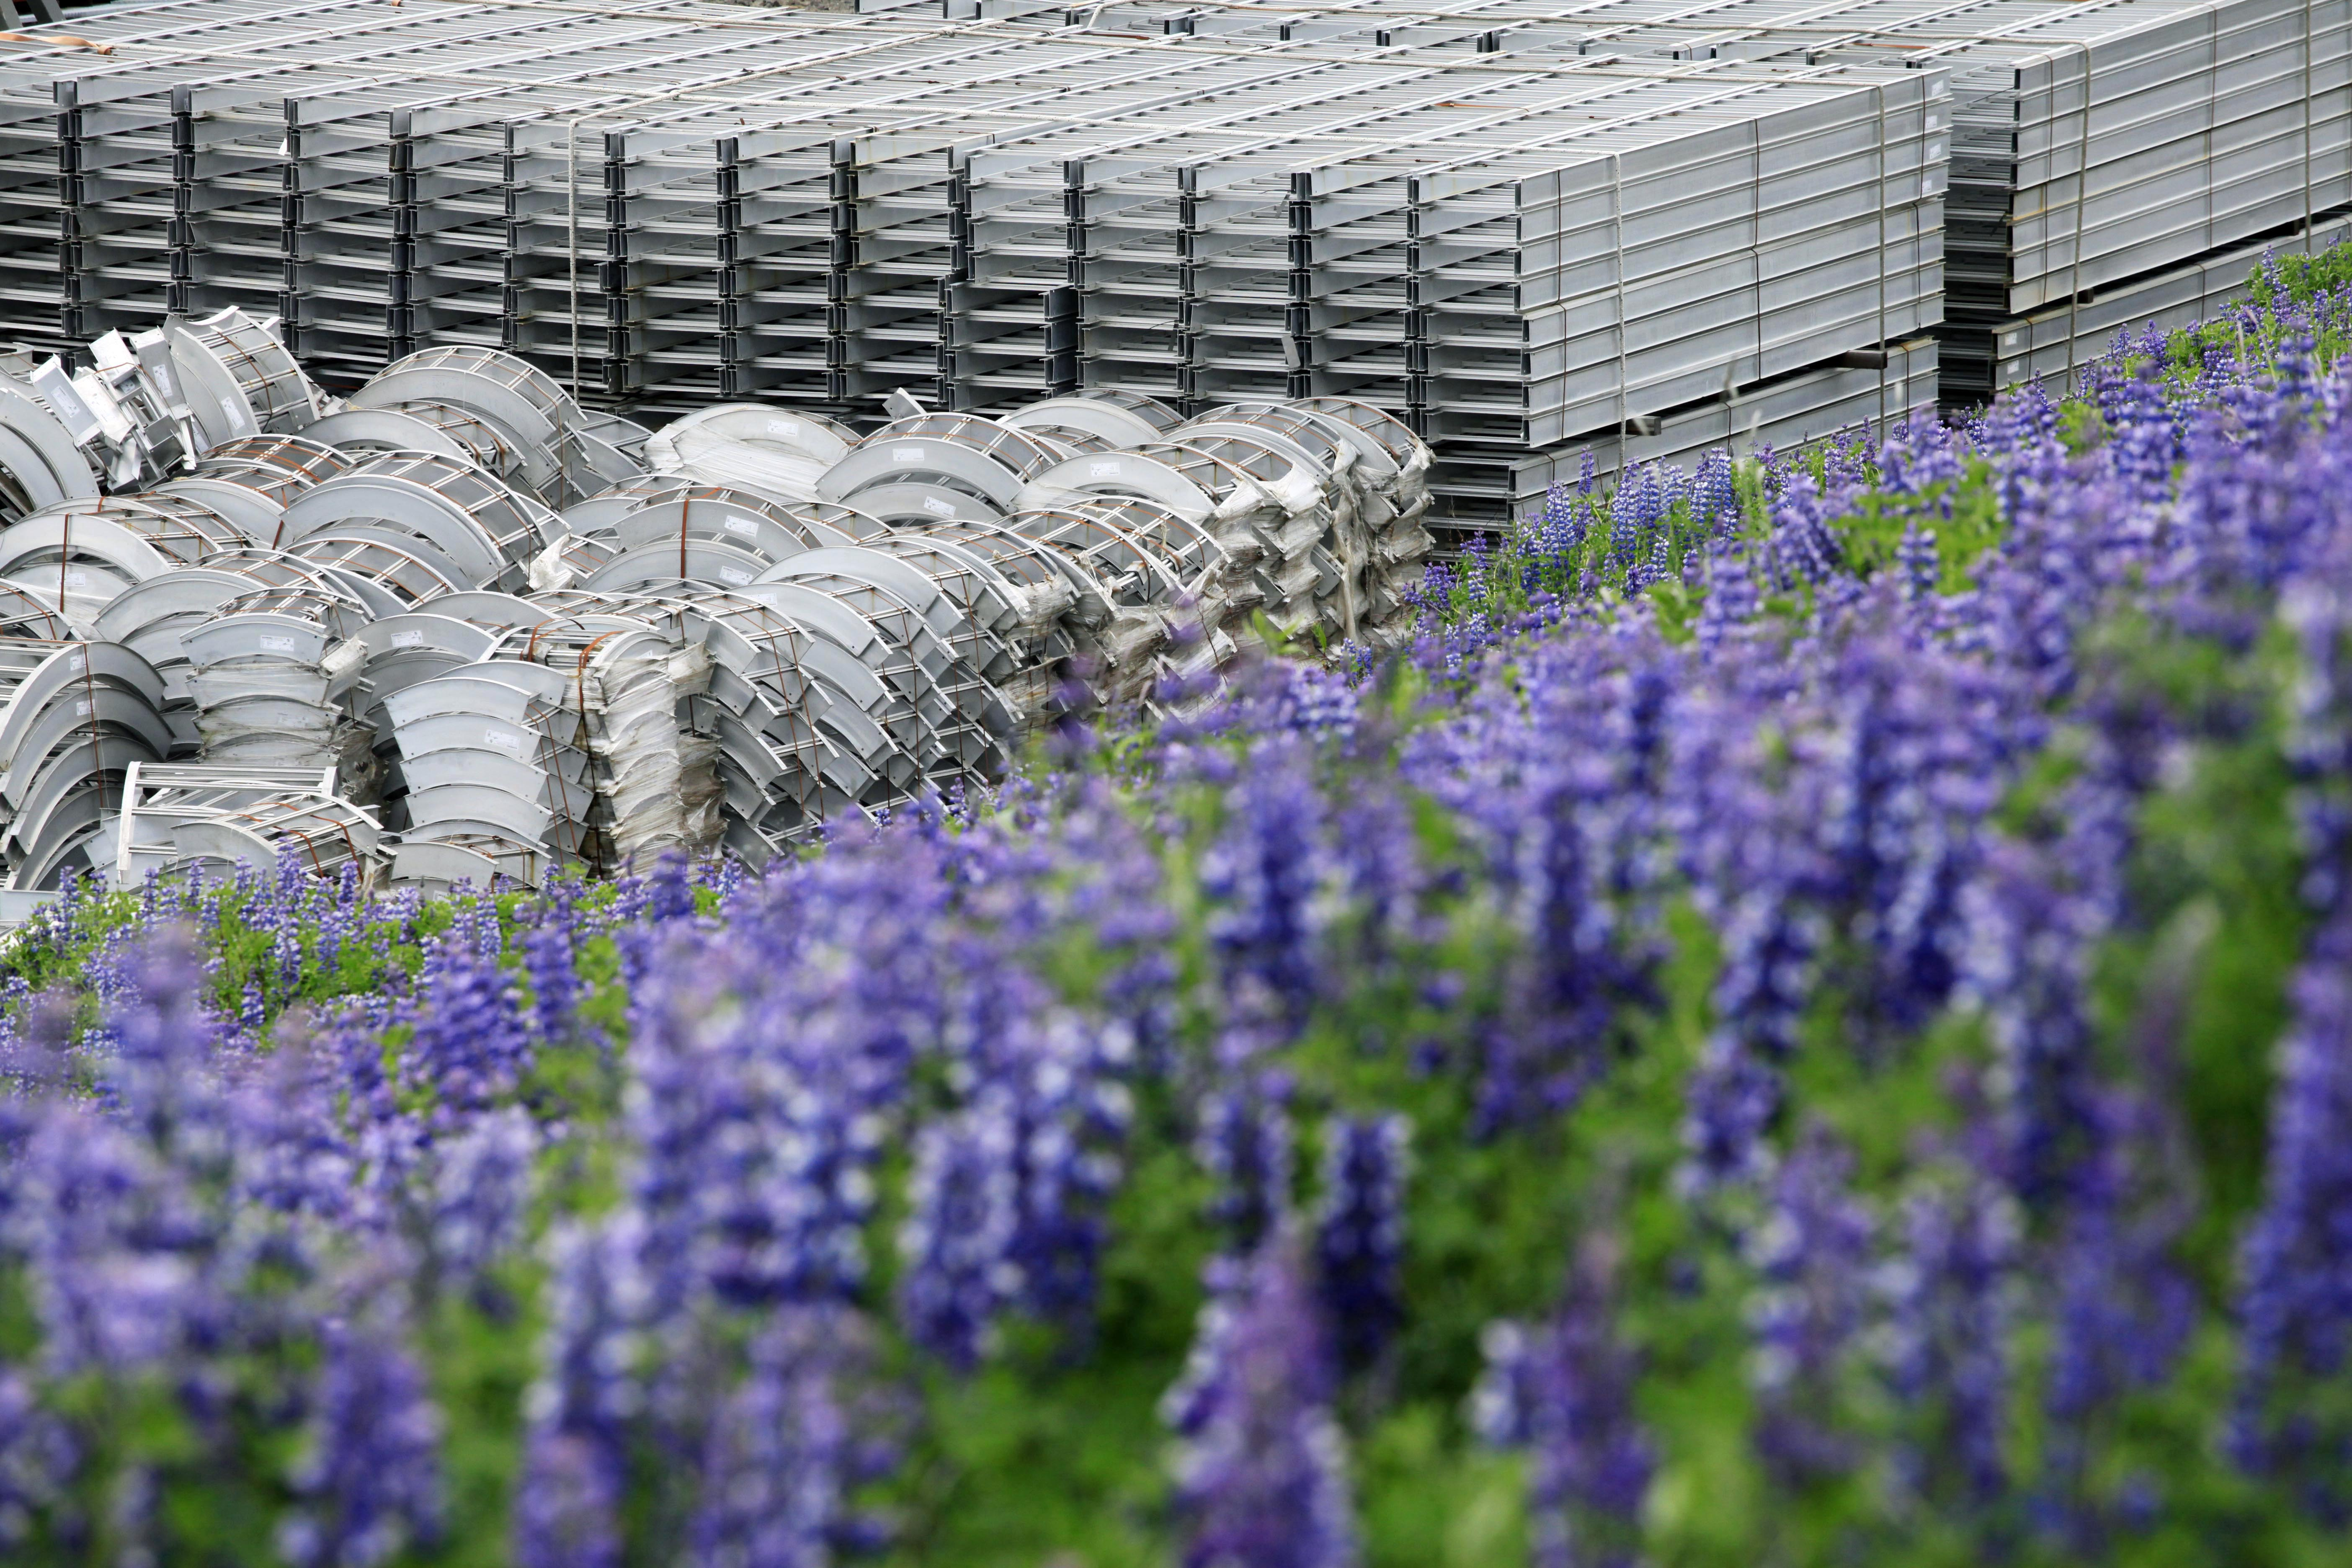 Stockpiles of fabricated aluminum at Alcoa's Fjardaal aluminum smelter in Iceland.